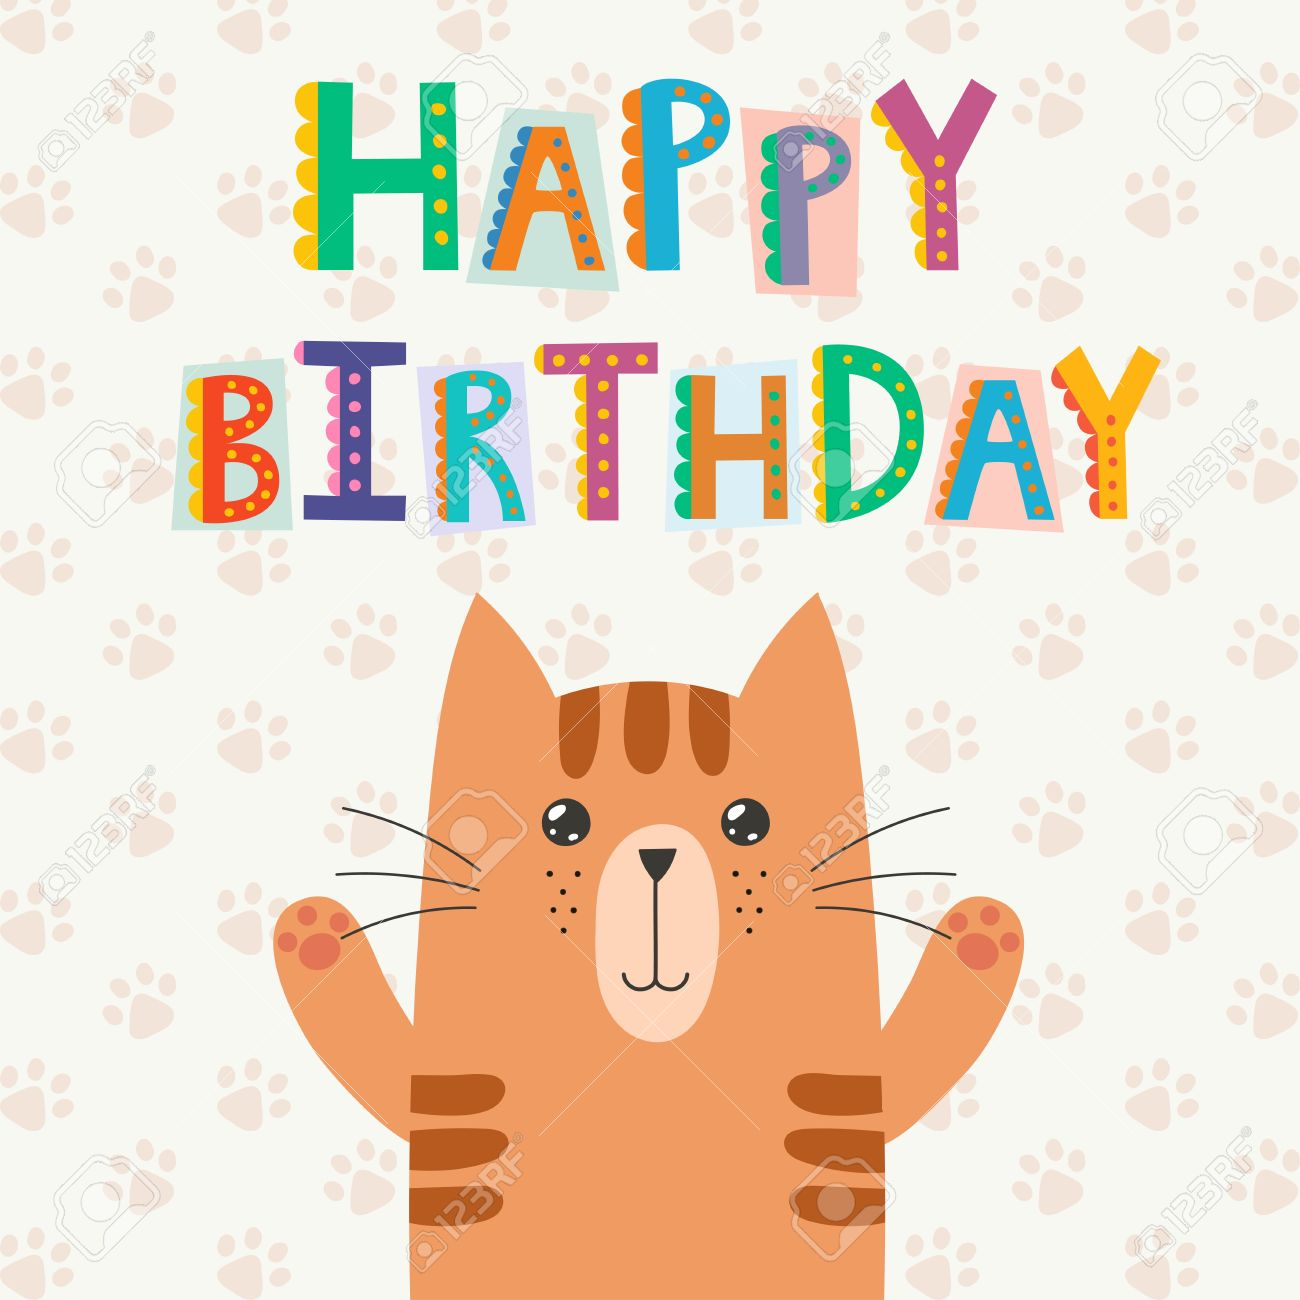 Happy birthday greeting card with a cute cat and funny text happy birthday greeting card with a cute cat and funny text vector illustration stock vector kristyandbryce Image collections